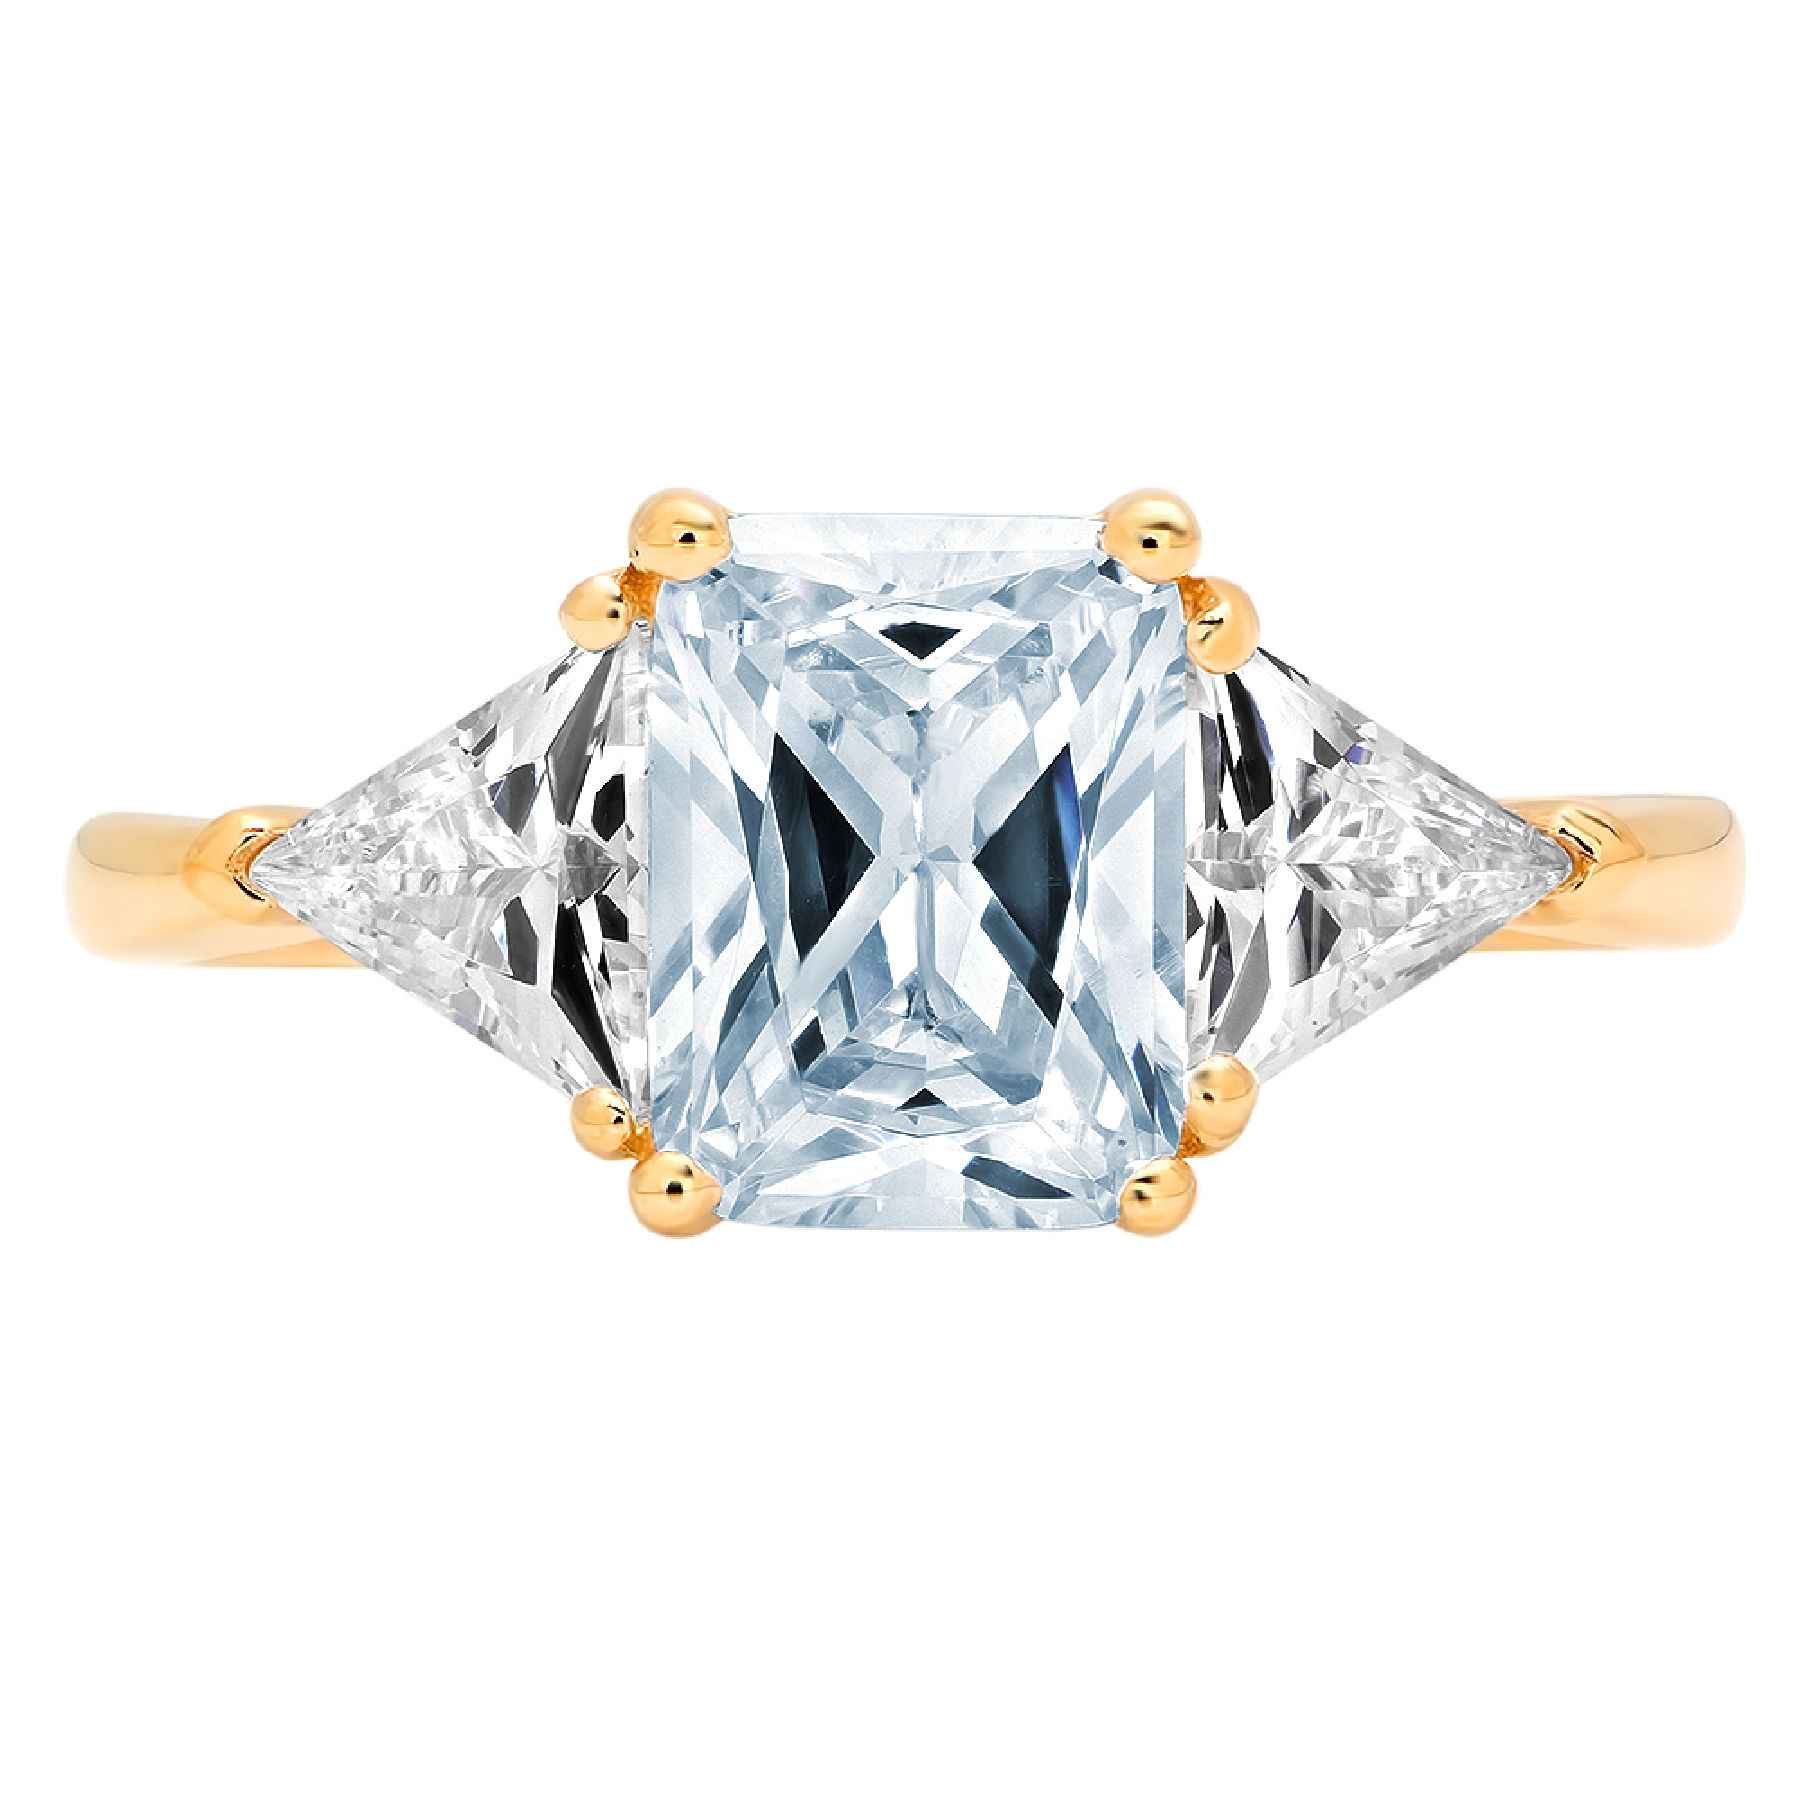 3.0 ct Round Cut Natural Sky Blue Topaz Classic Wedding Engagement Bridal Promise Designer Statement Ring Solid 14k White Gold